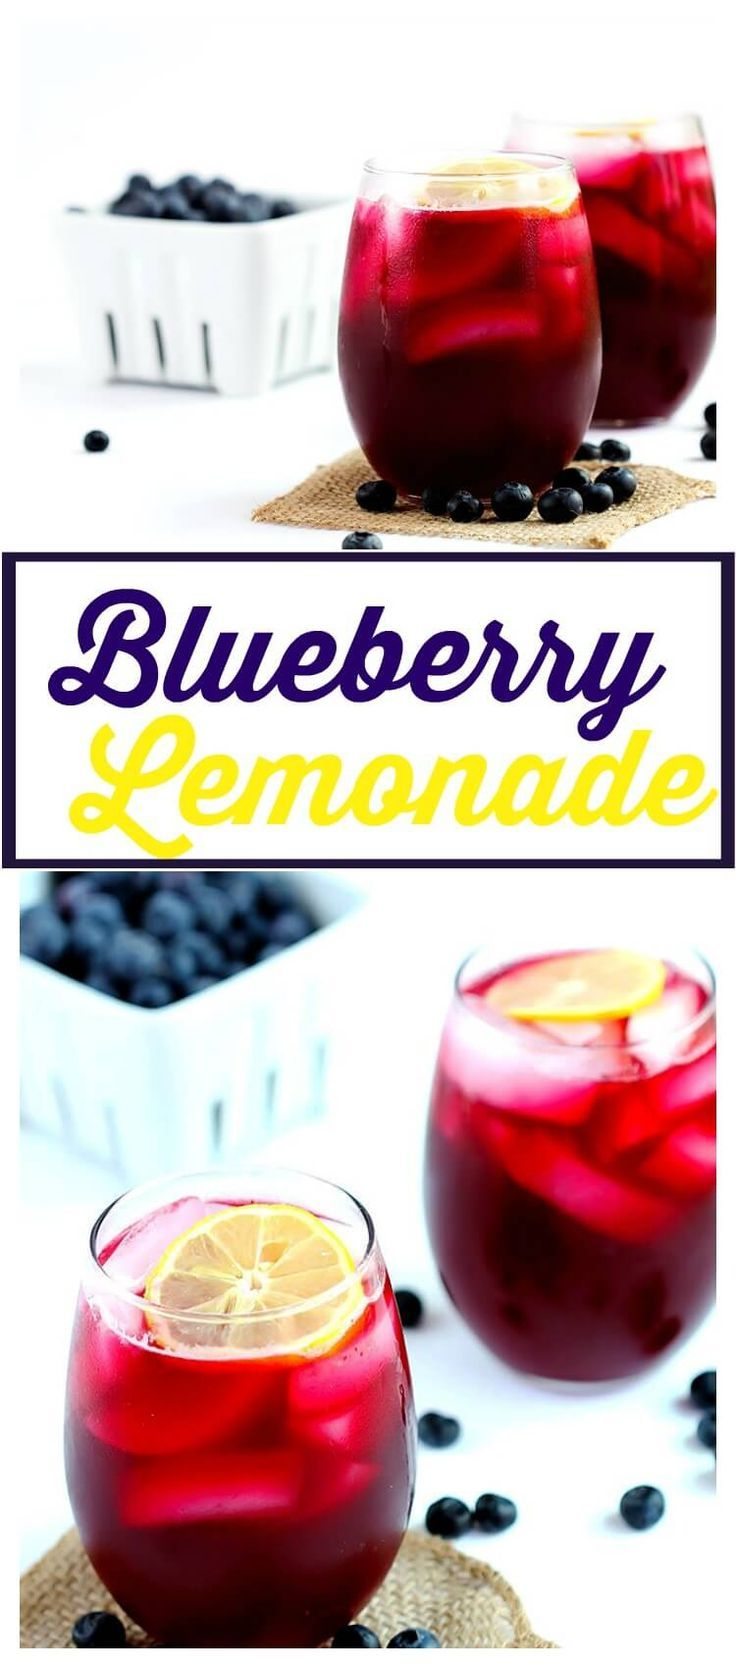 Blueberry Lemonade - Refreshing blend using fresh blueberries, real lemons and sugar. This easy recipe is the perfect summer drink to cool you down.